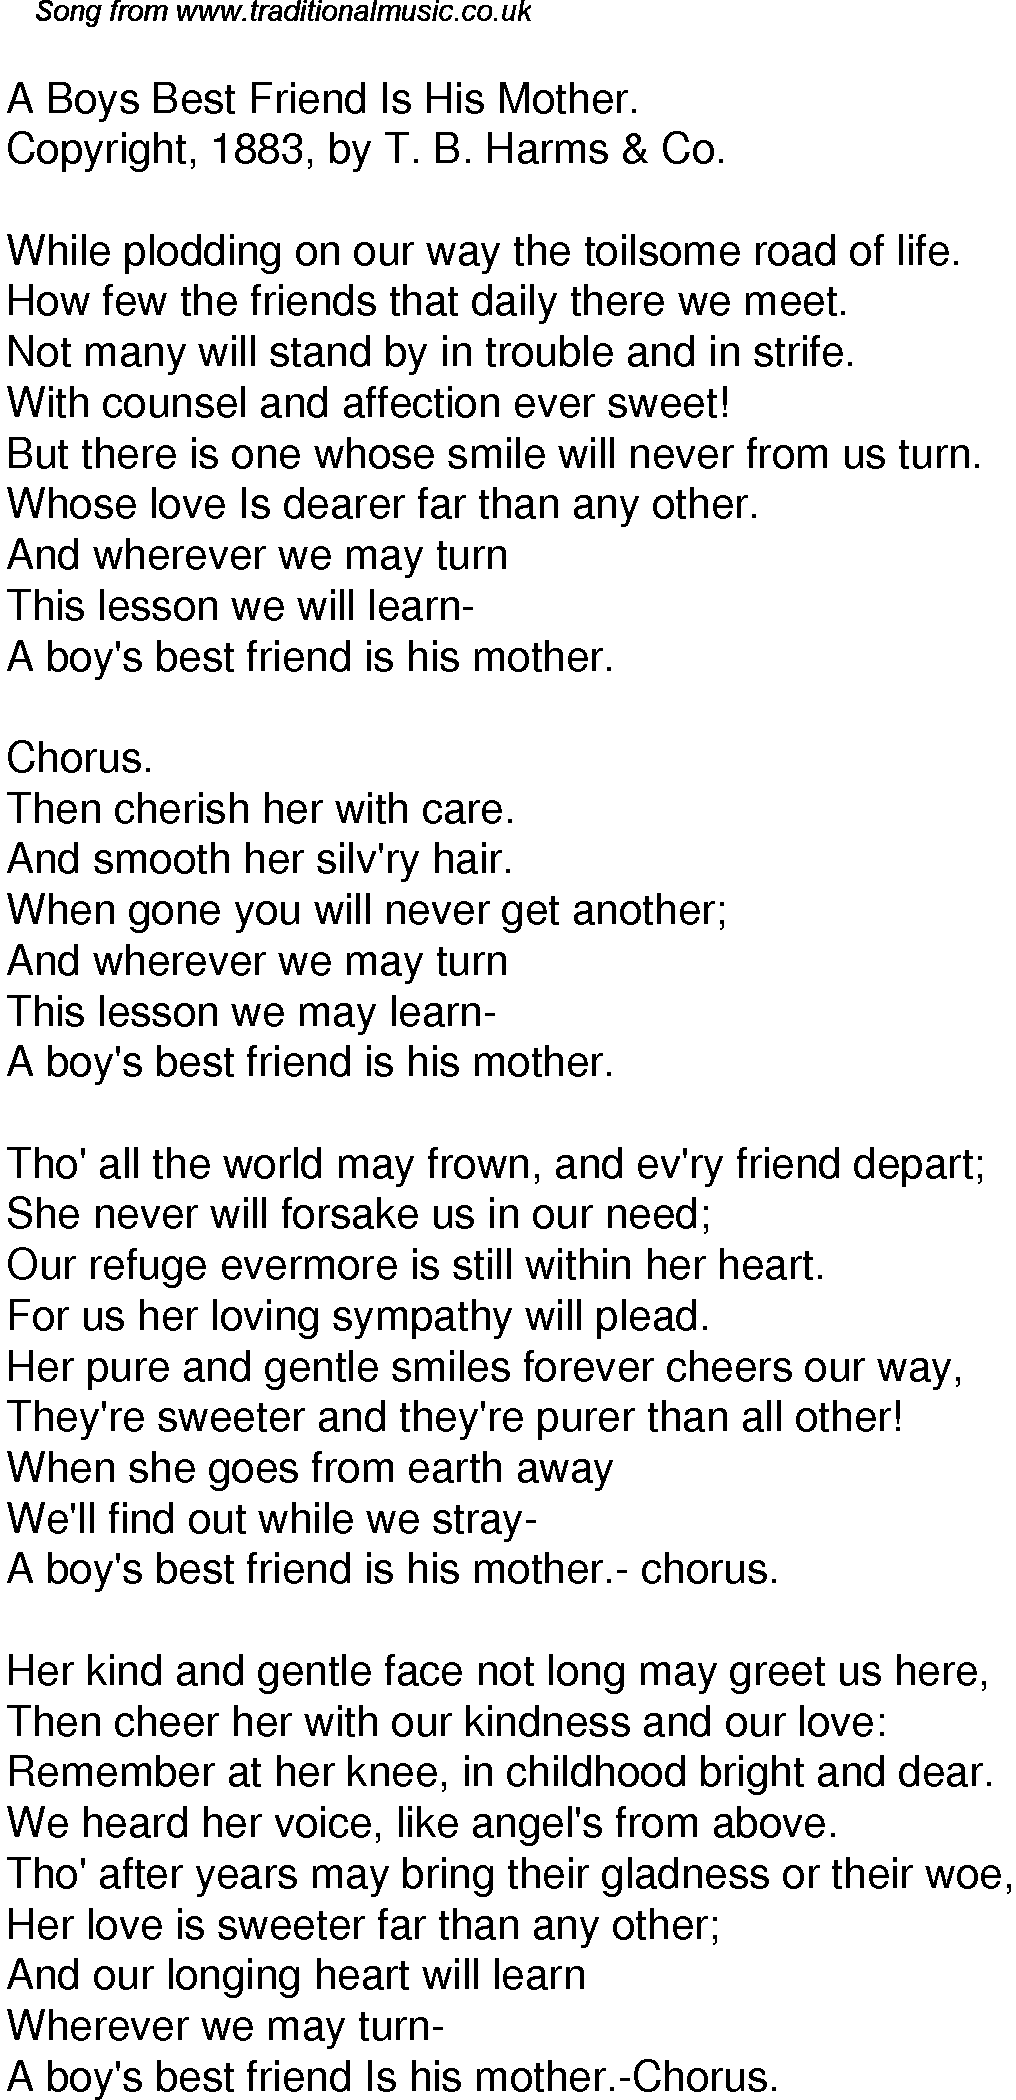 Old Time Song Lyrics For 59 A Boys Best Friend Is His Mother